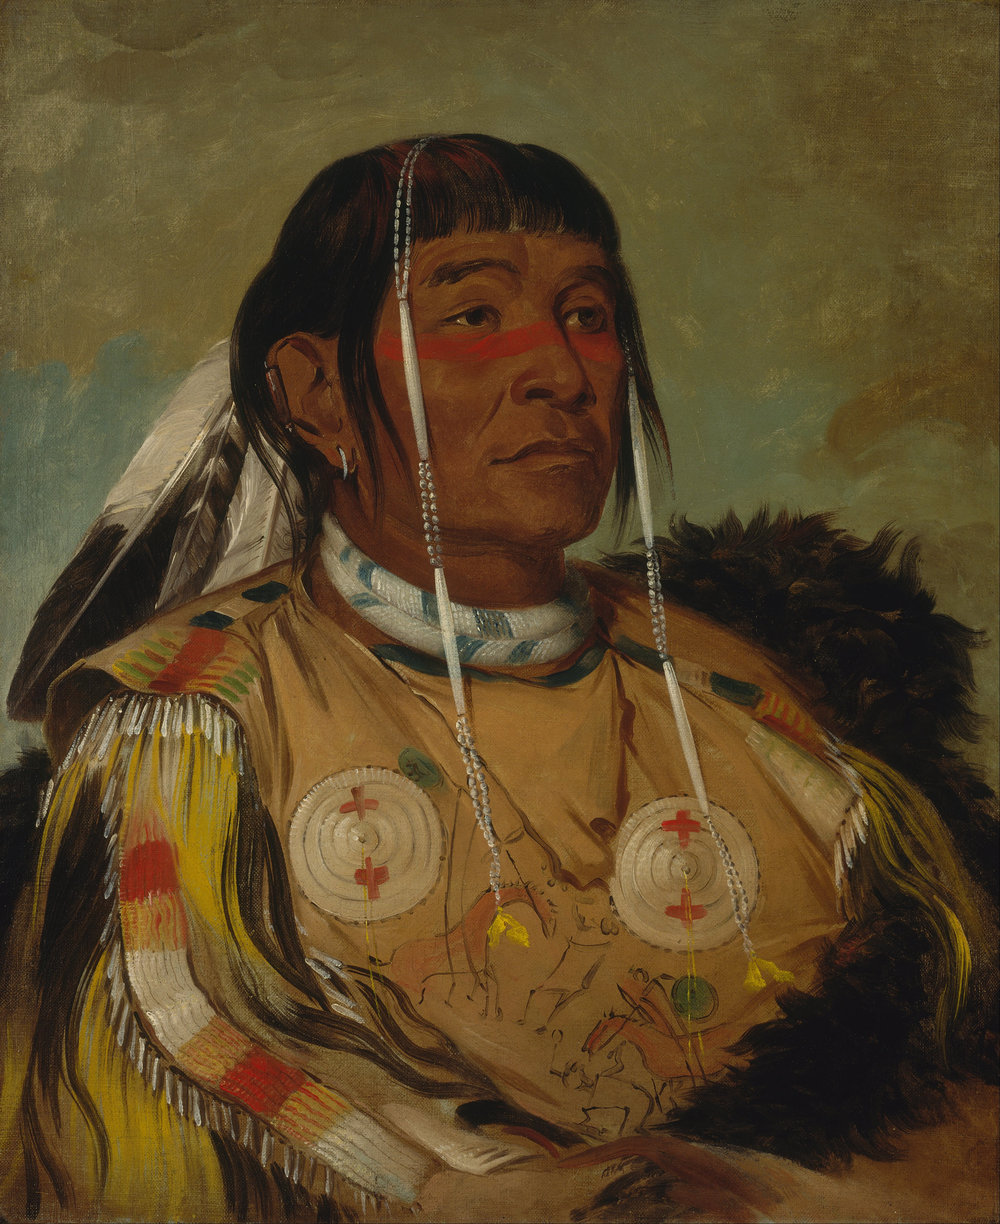 Sha-co-pay, a Plains Ojibwa chief. Painted at Fort Union, 1832 by George Catlin